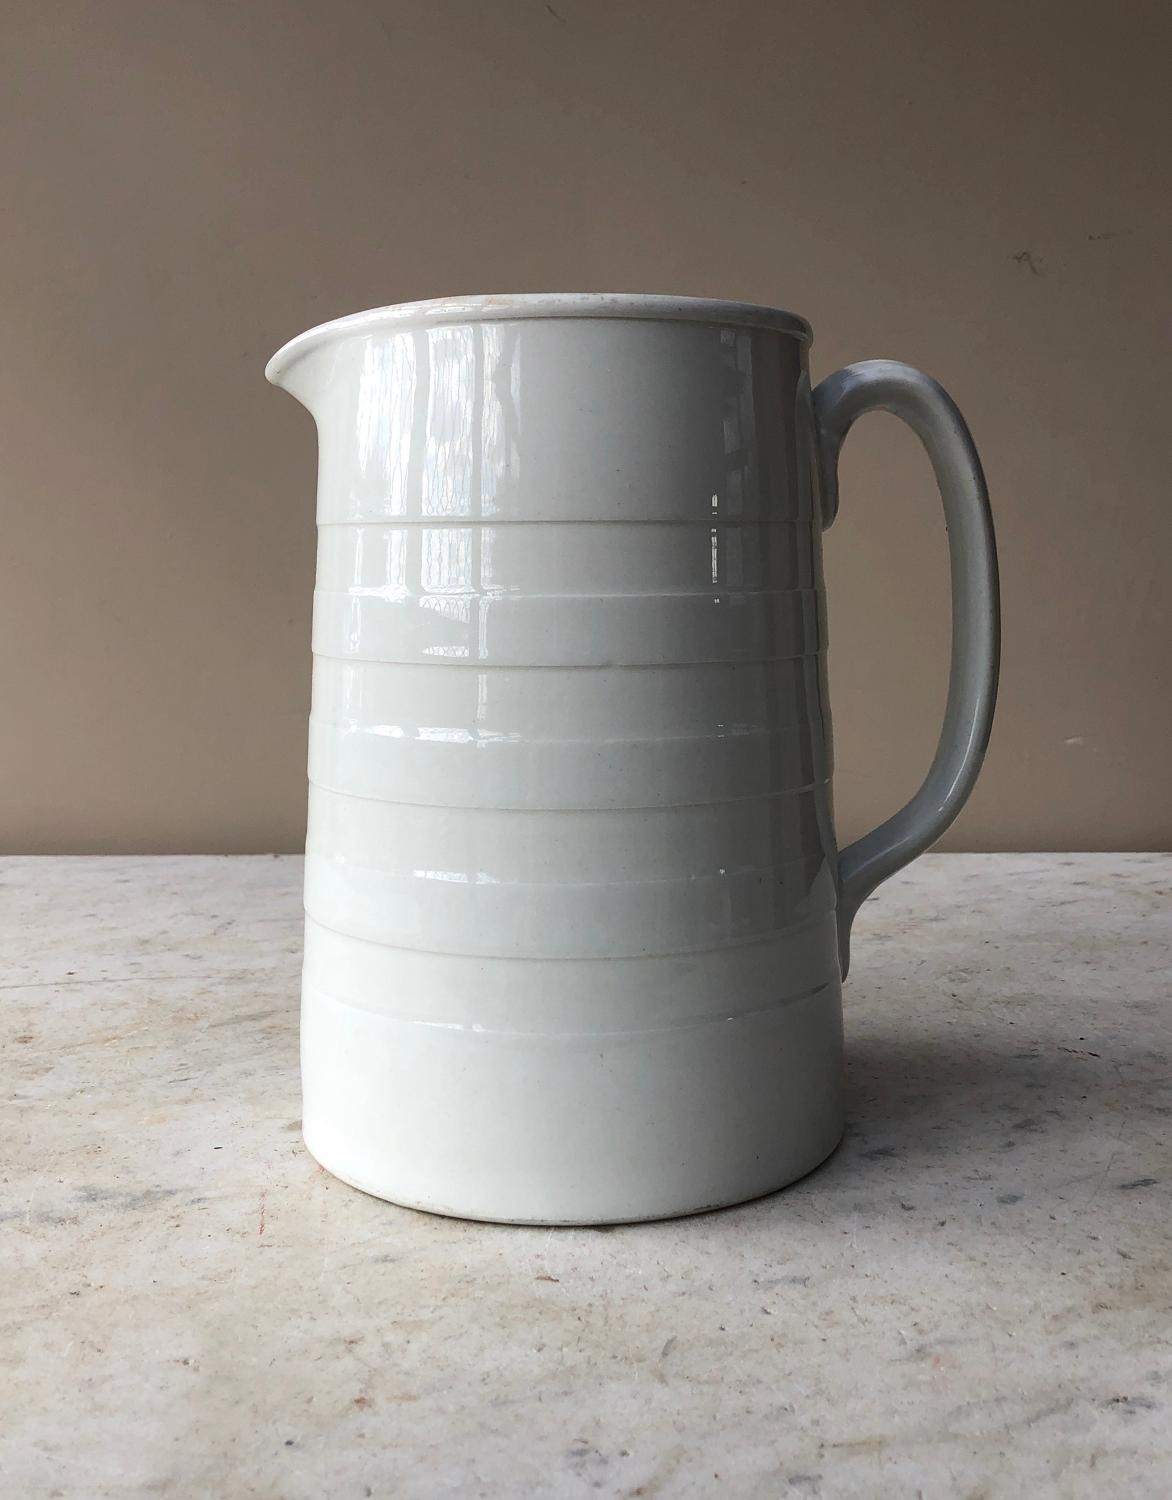 Edwardian White Banded Dairy Milk Cream Jug - 5 Pints